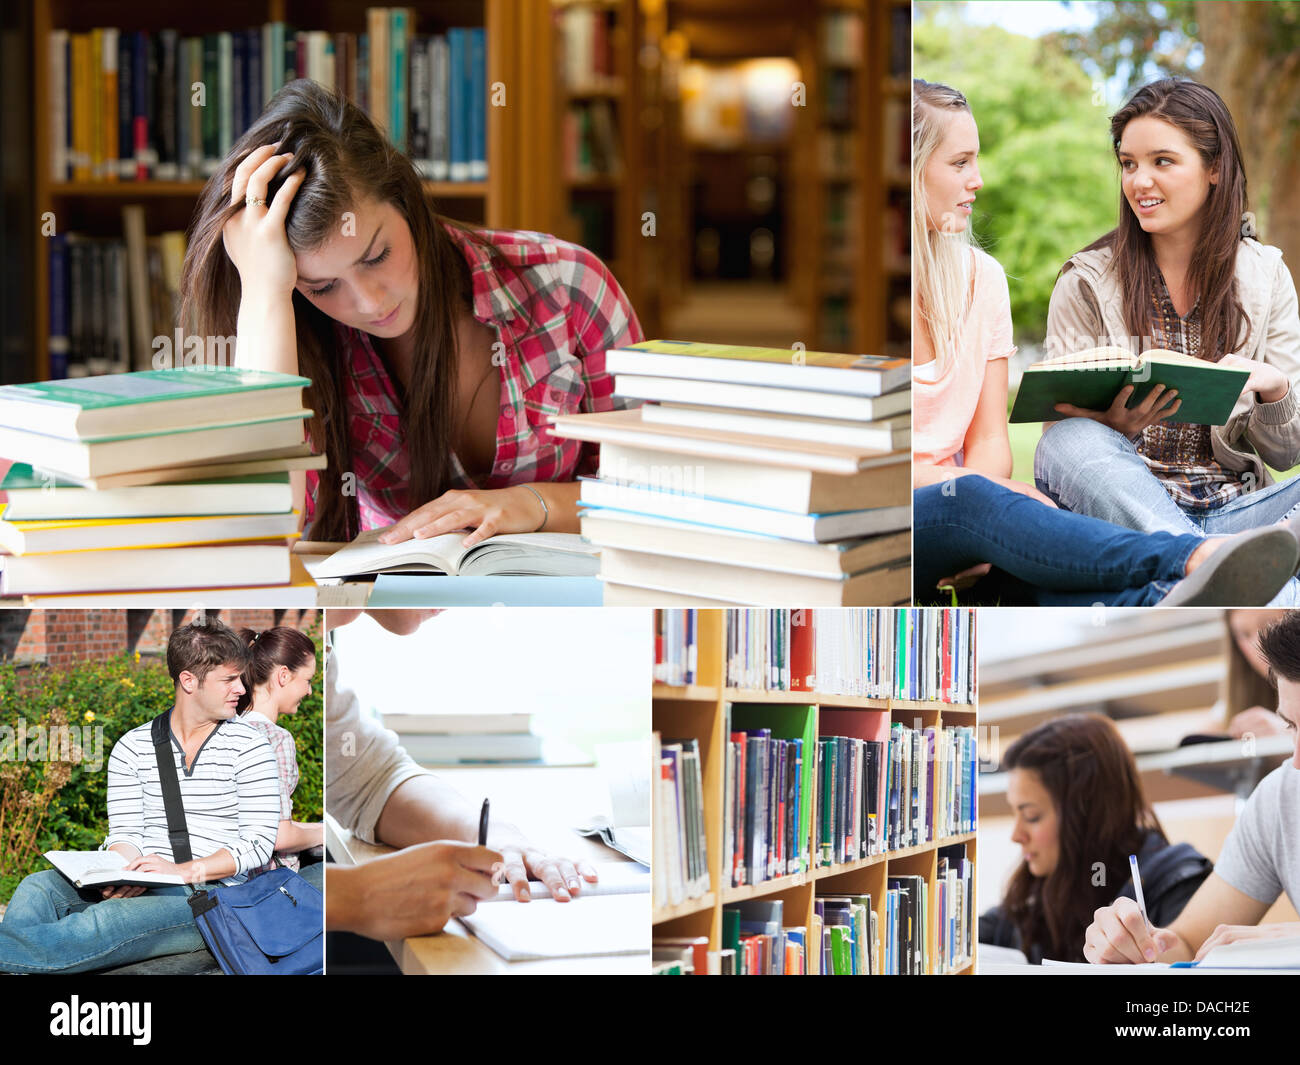 Collage of students studying - Stock Image